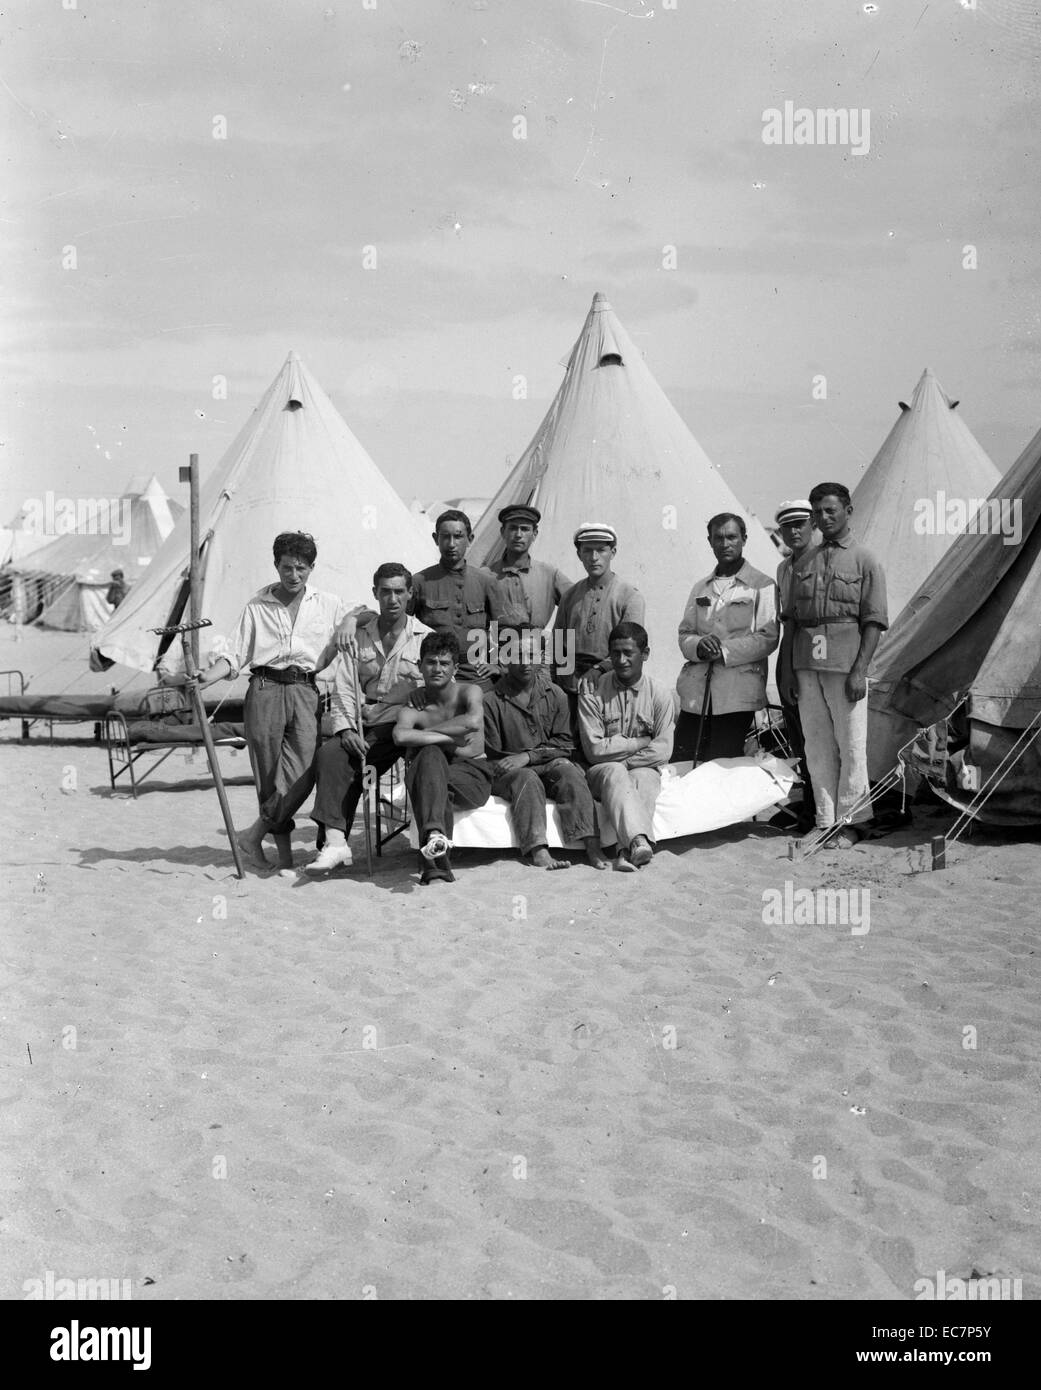 Emergency camp at Tel Aviv. Jewish colonies and settlements. - Stock Image